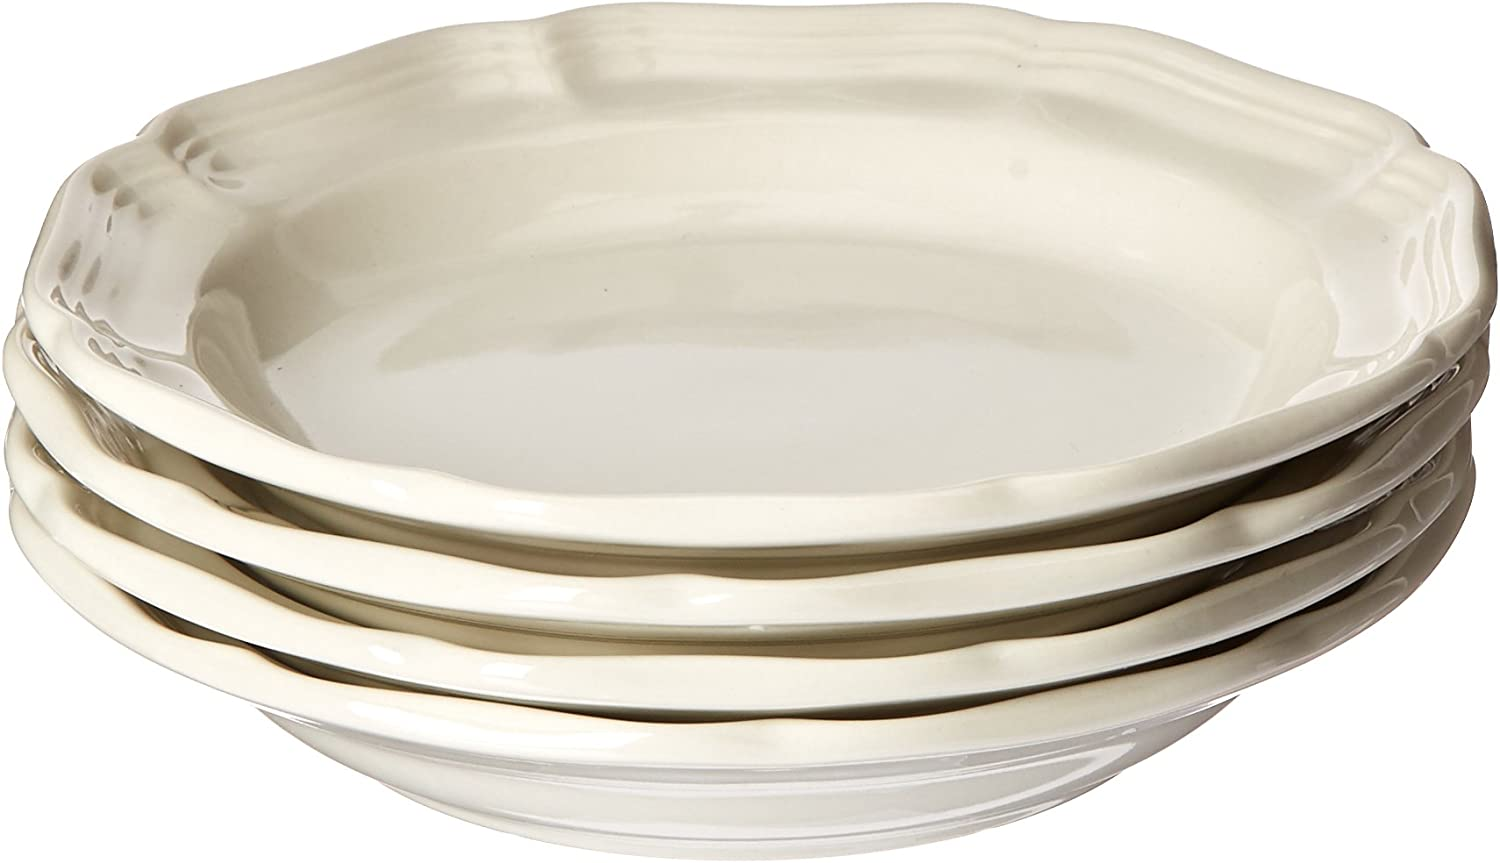 Mikasa French Countryside Bread and Butter Plate, Set of 4